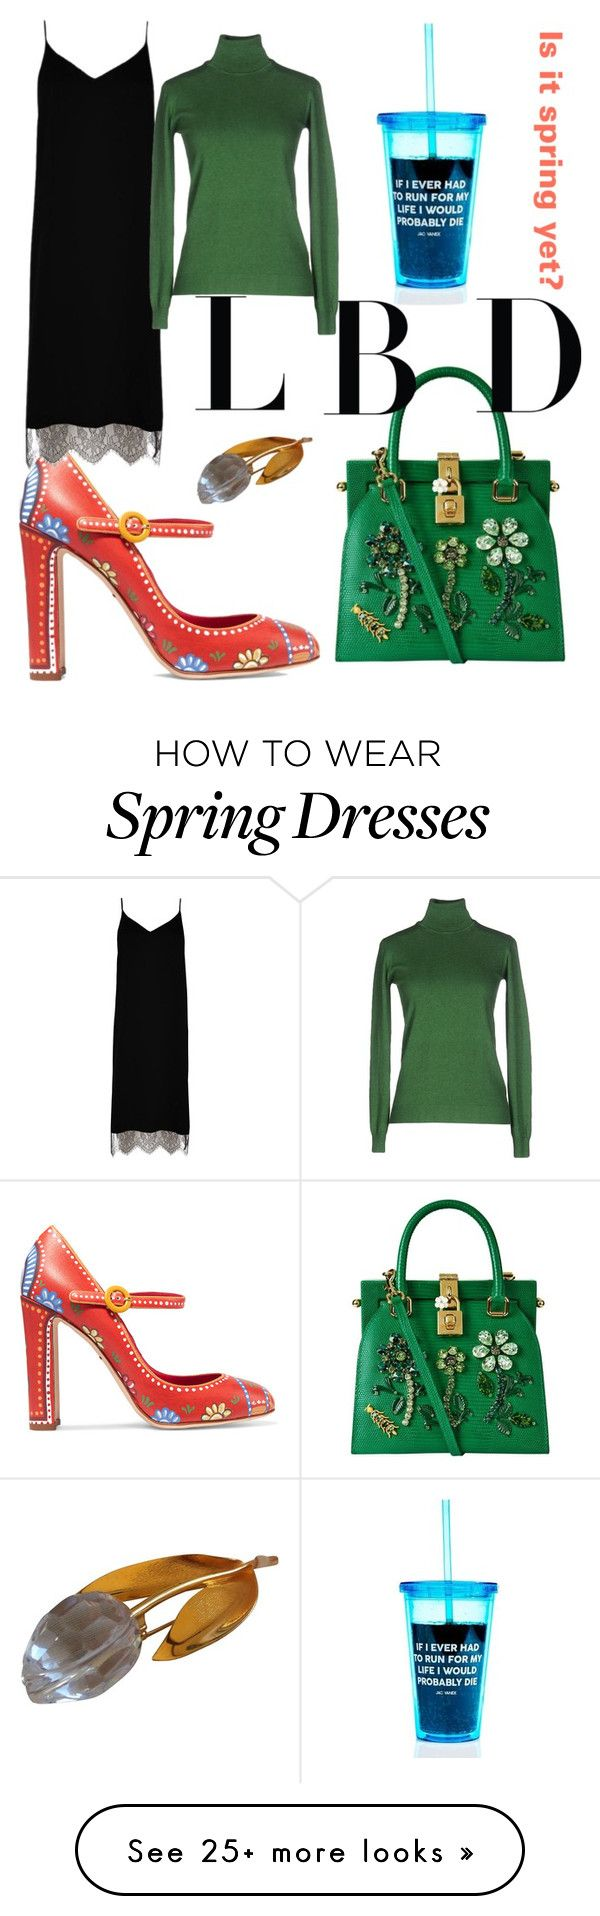 """Spring?"" by ralugoii on Polyvore featuring Dolce&Gabbana, River Island, Alpha Studio and Swarovski"